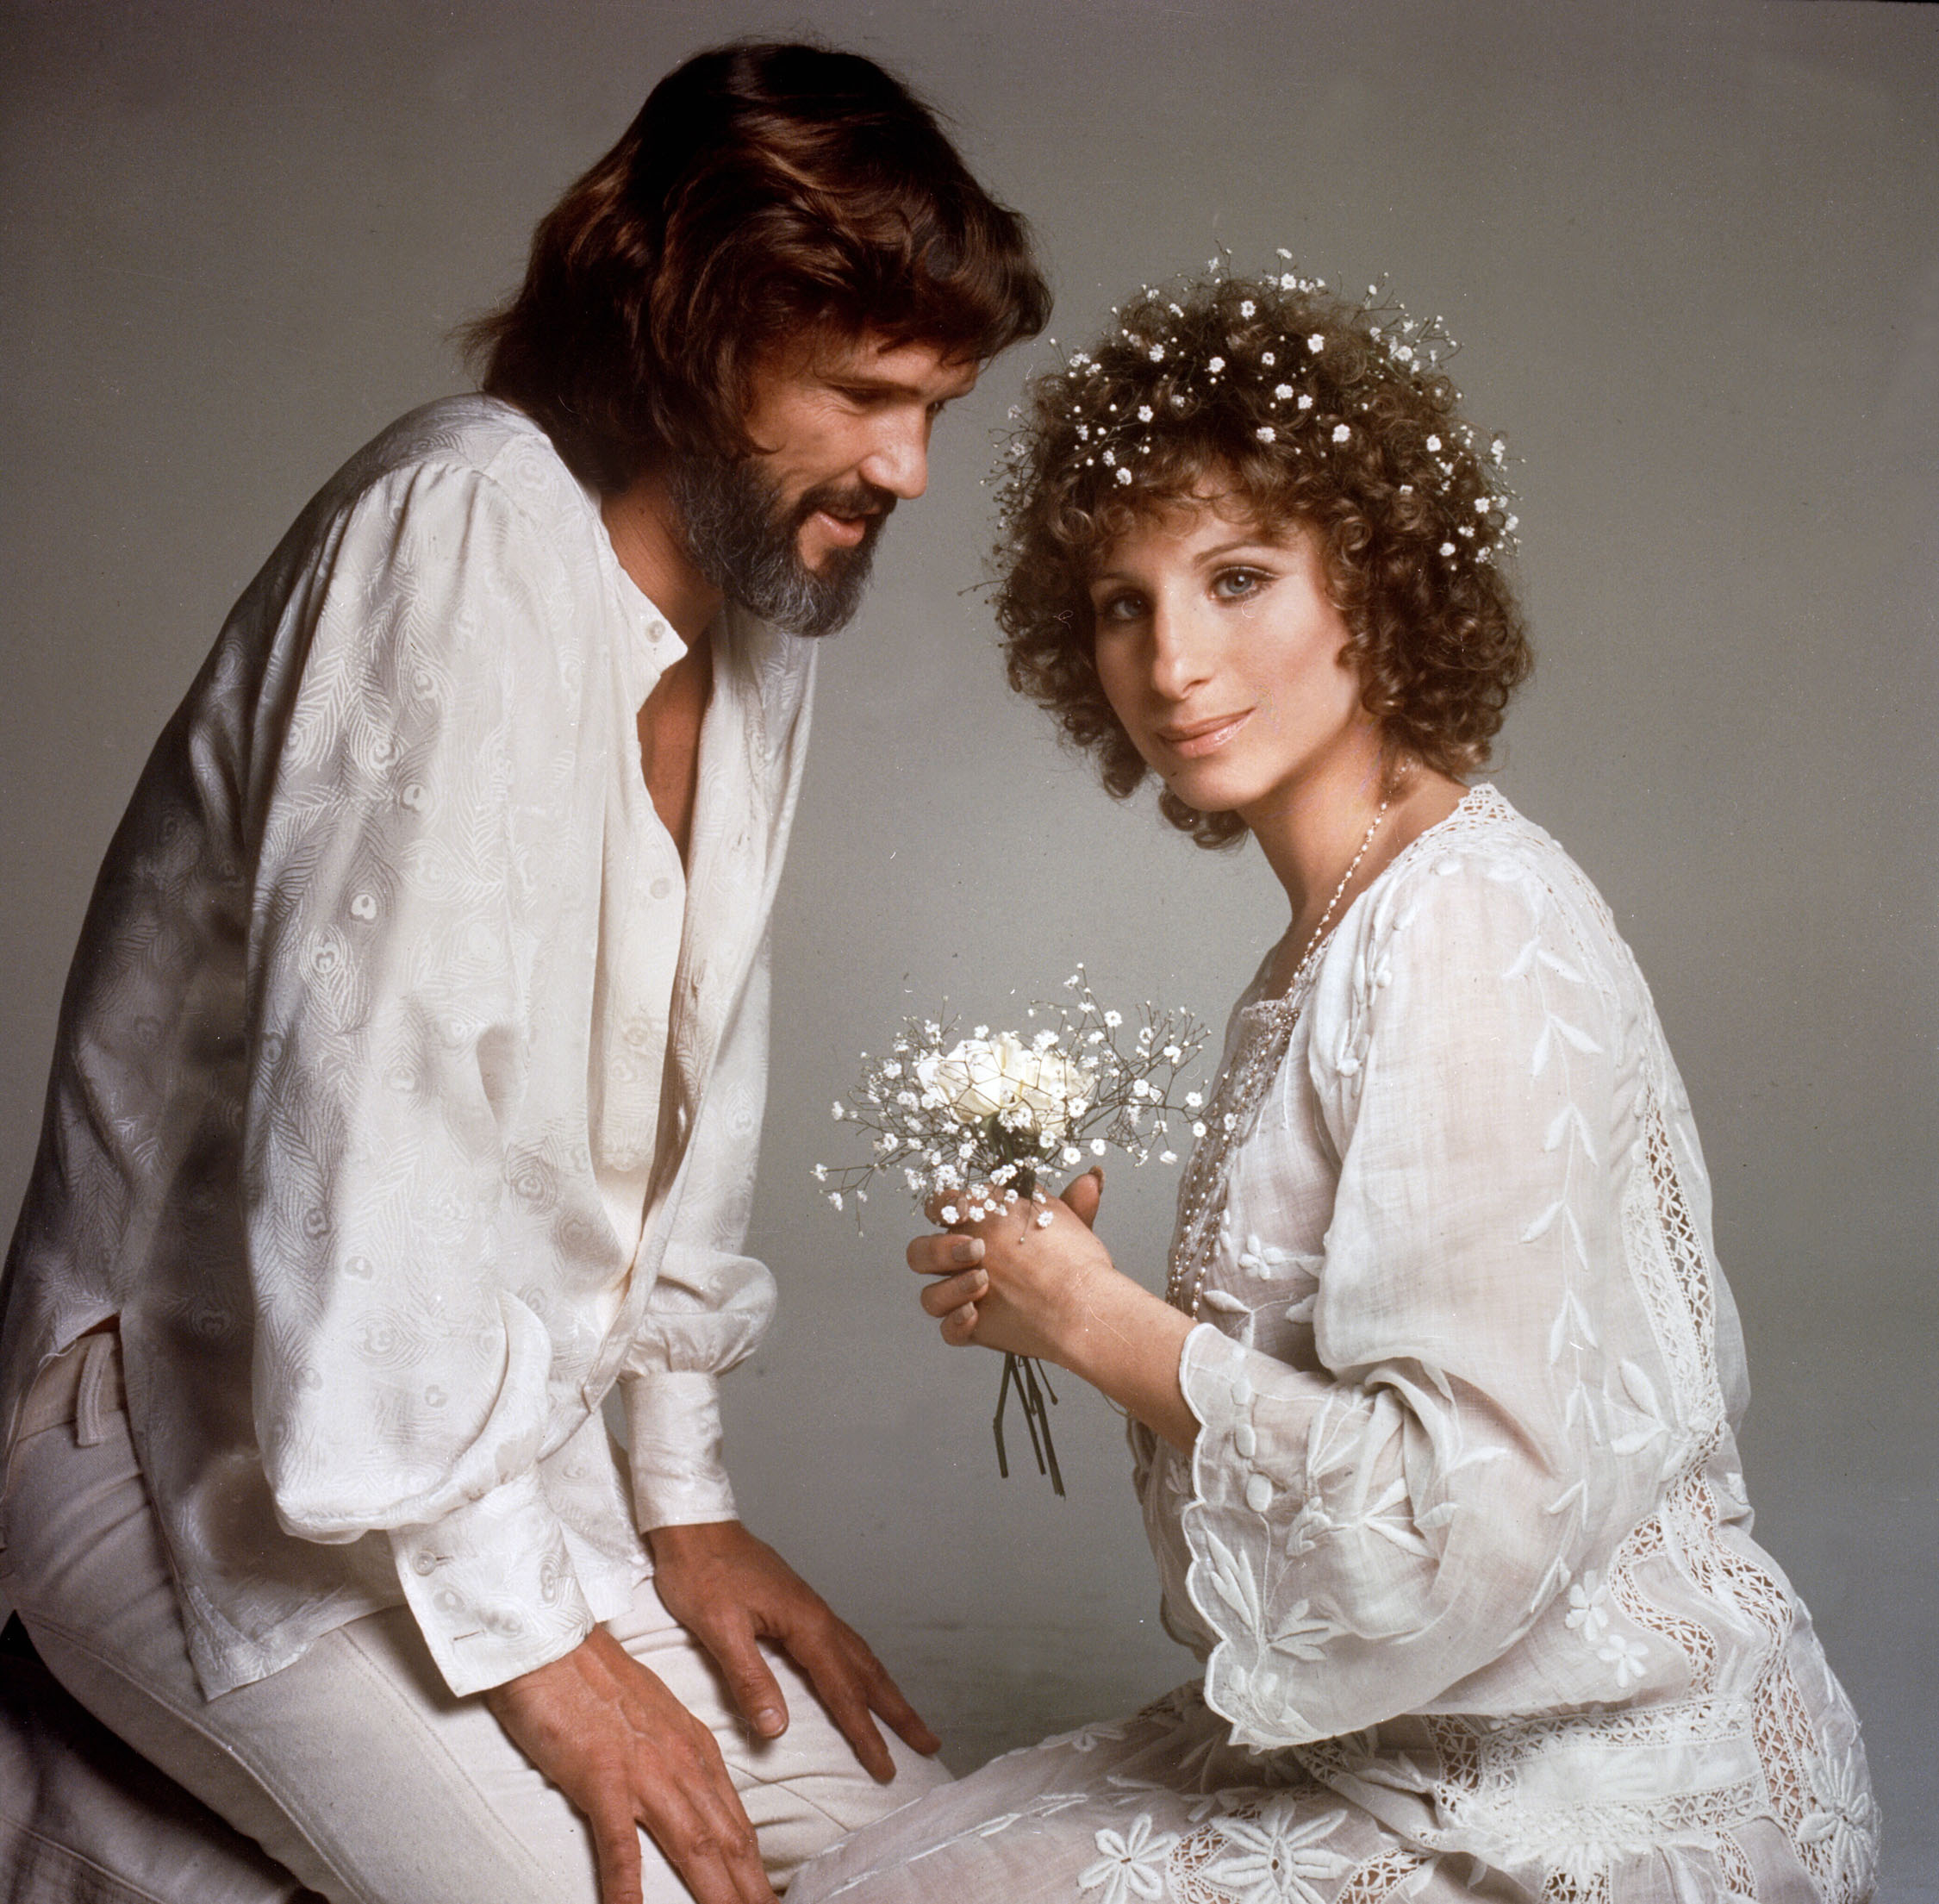 Frank Pierson A Star Is Born barbra Streisand and Kris Kristofferson 197616